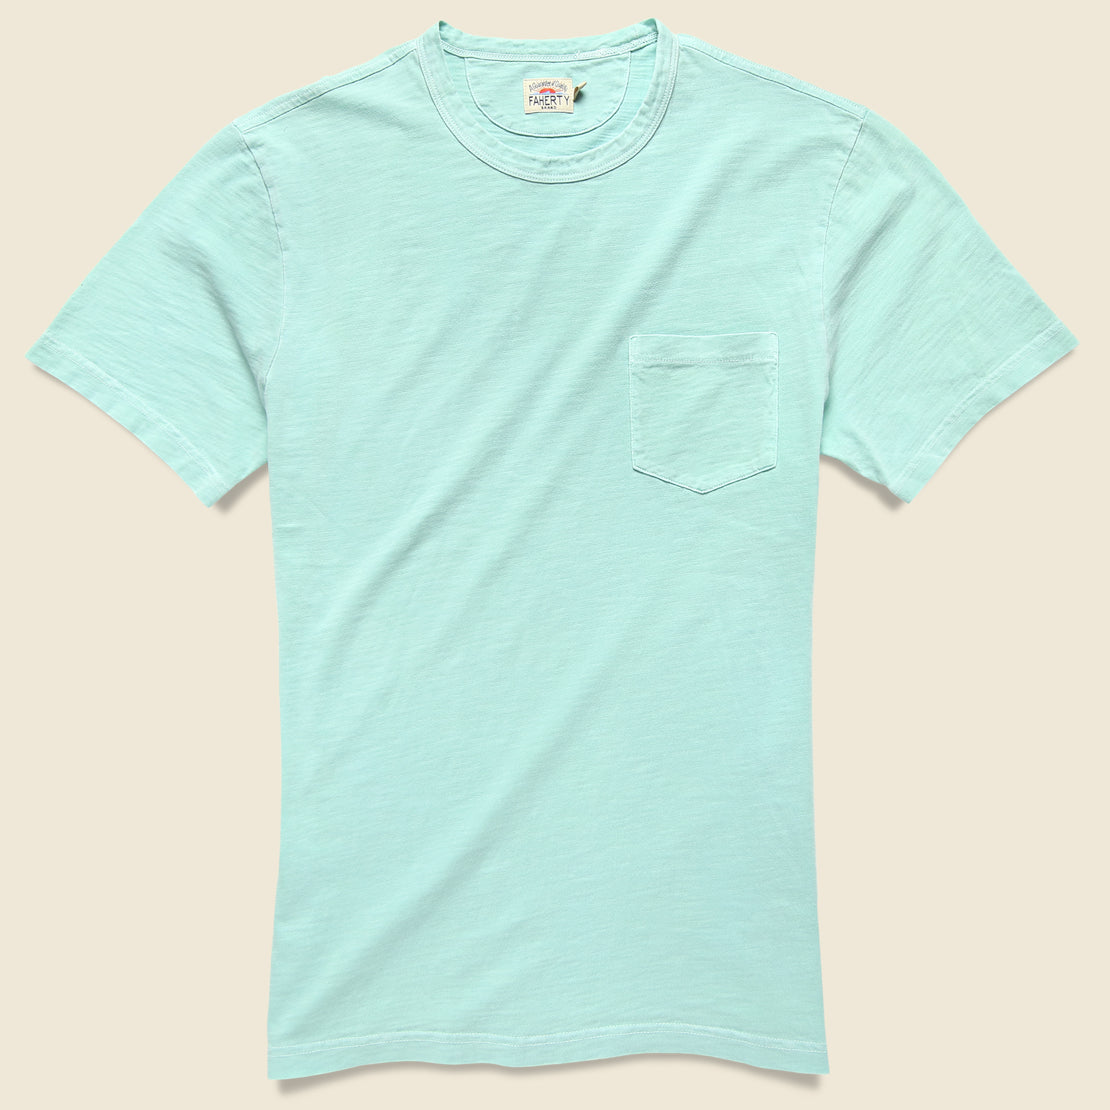 Faherty Garment Dyed Pocket Tee - Water Blue